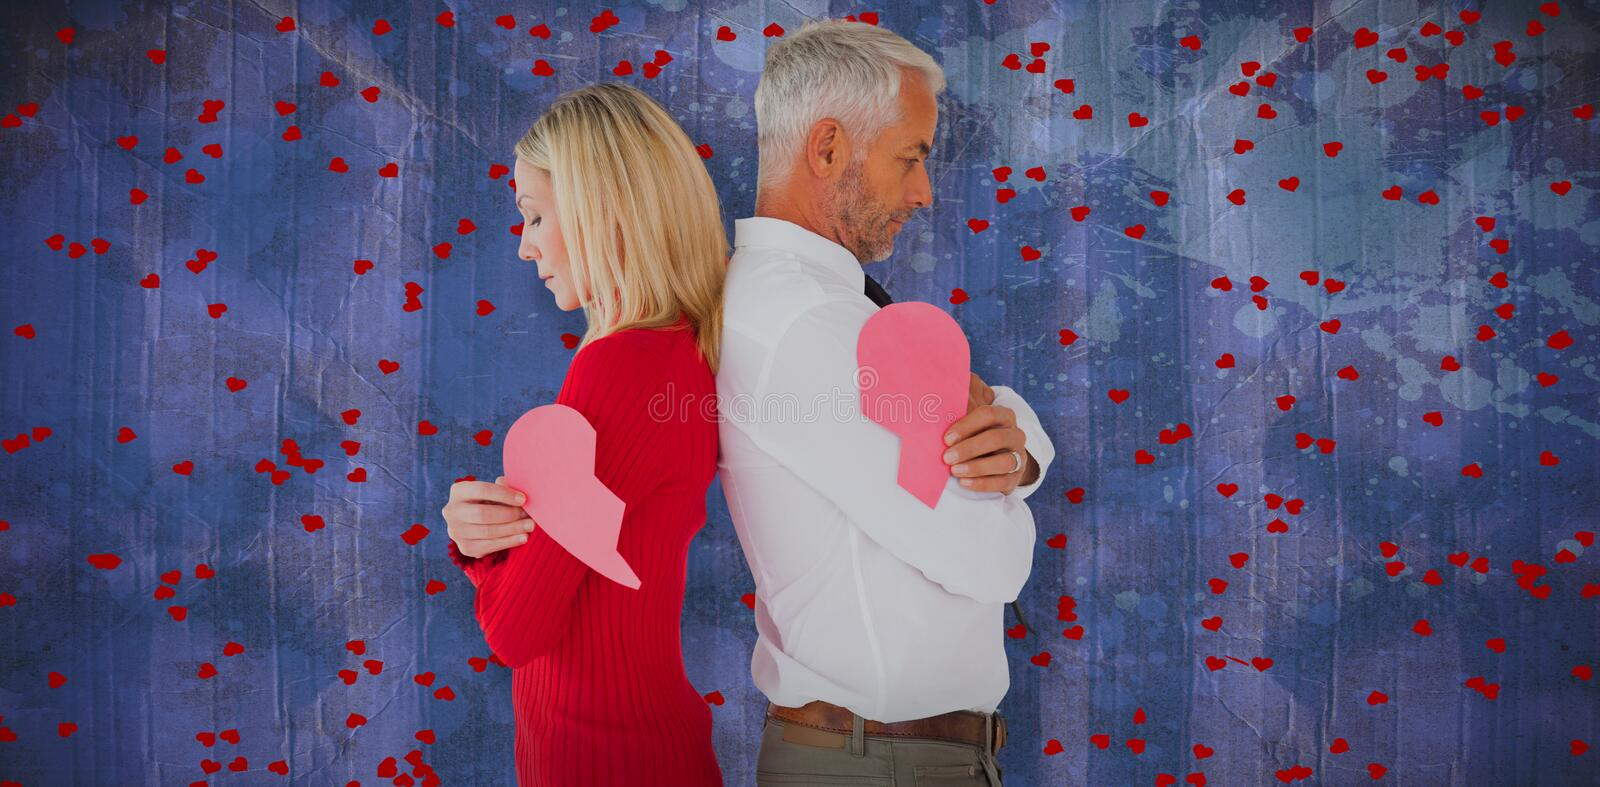 Composite image of couple holding two halves of broken heart. Couple holding two halves of broken heart against blue paint splashed surface royalty free stock photos